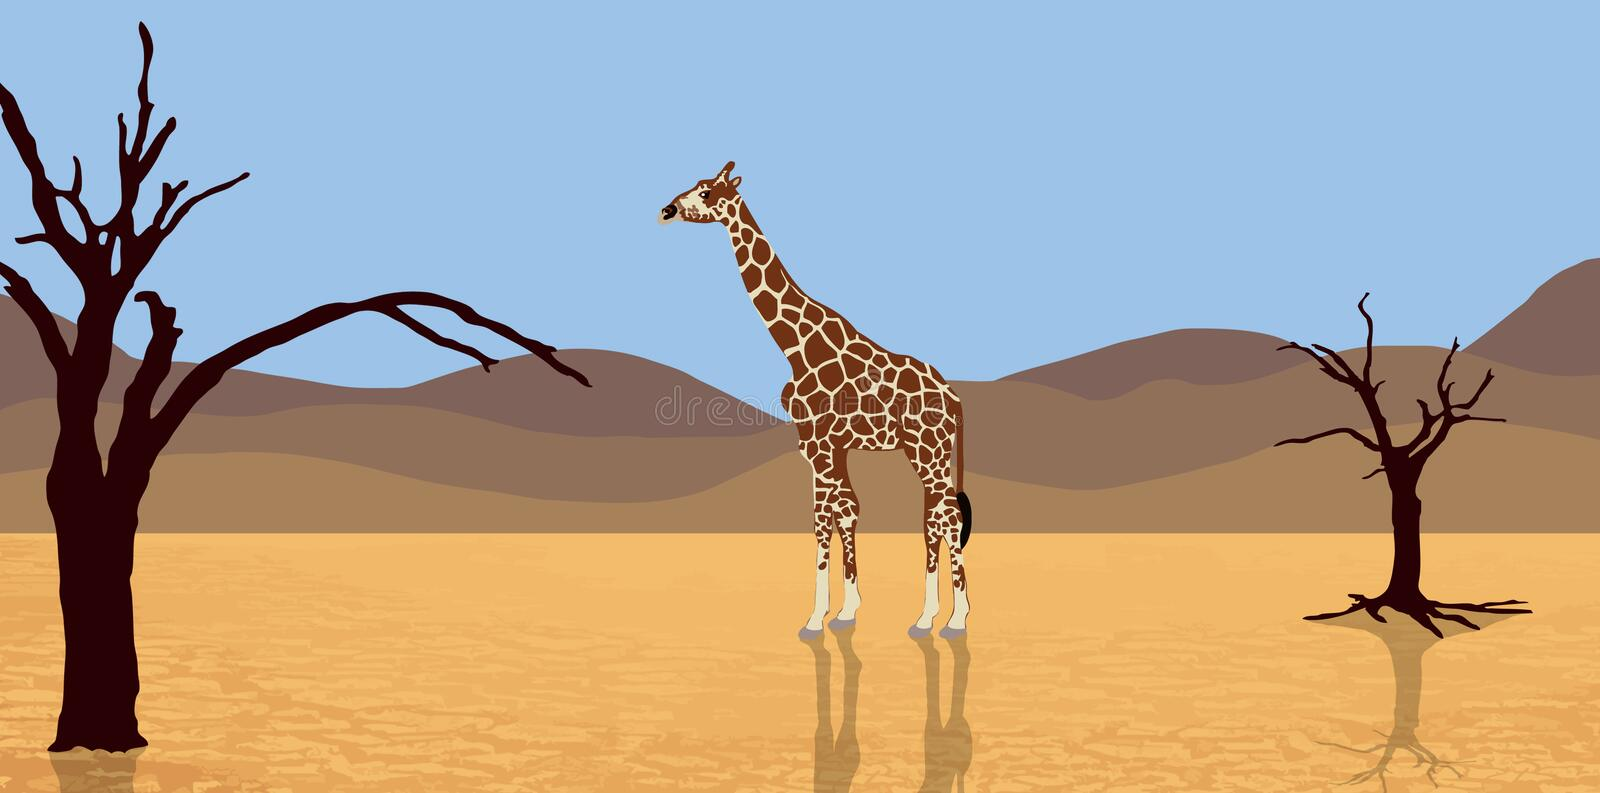 Giraffa in deserto illustrazione di stock